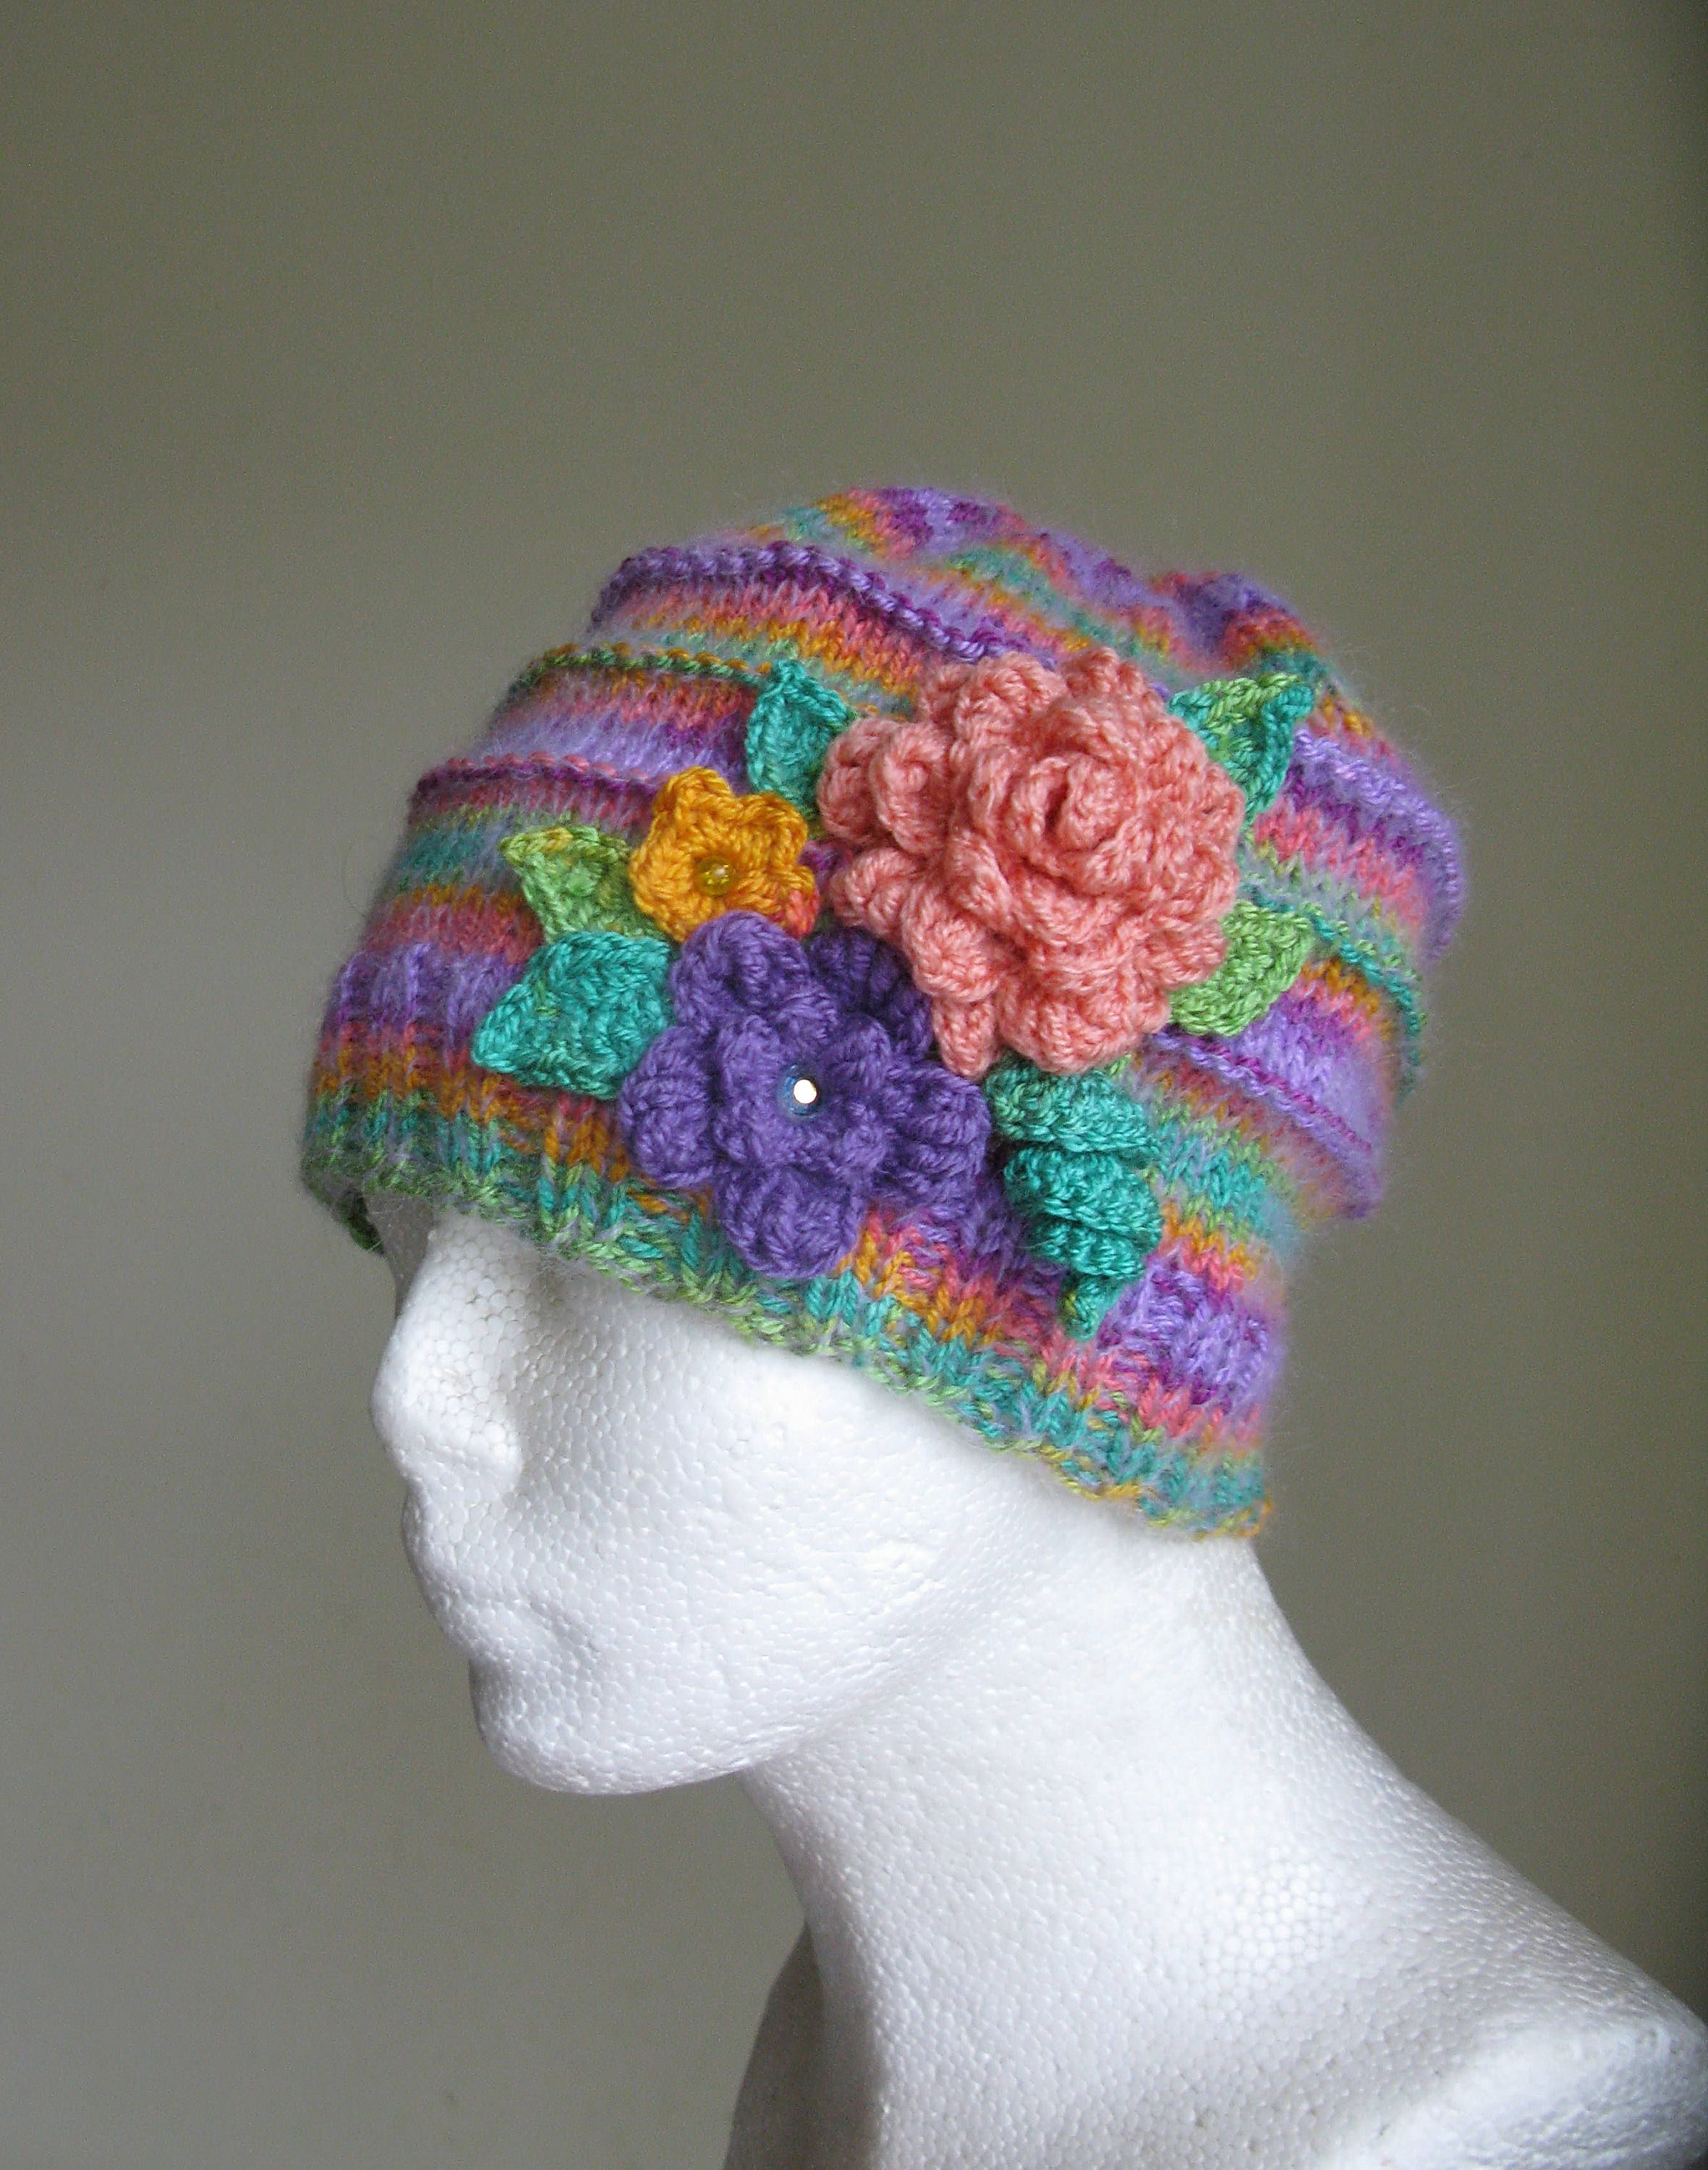 902b66d3af7  Knit  Girls  Hat with Flowers  Multicolor  Spring Children s  HandMade Knitted  Hat Knit Accessories Multi colored Warm Hat Girls Gifts  Etsy